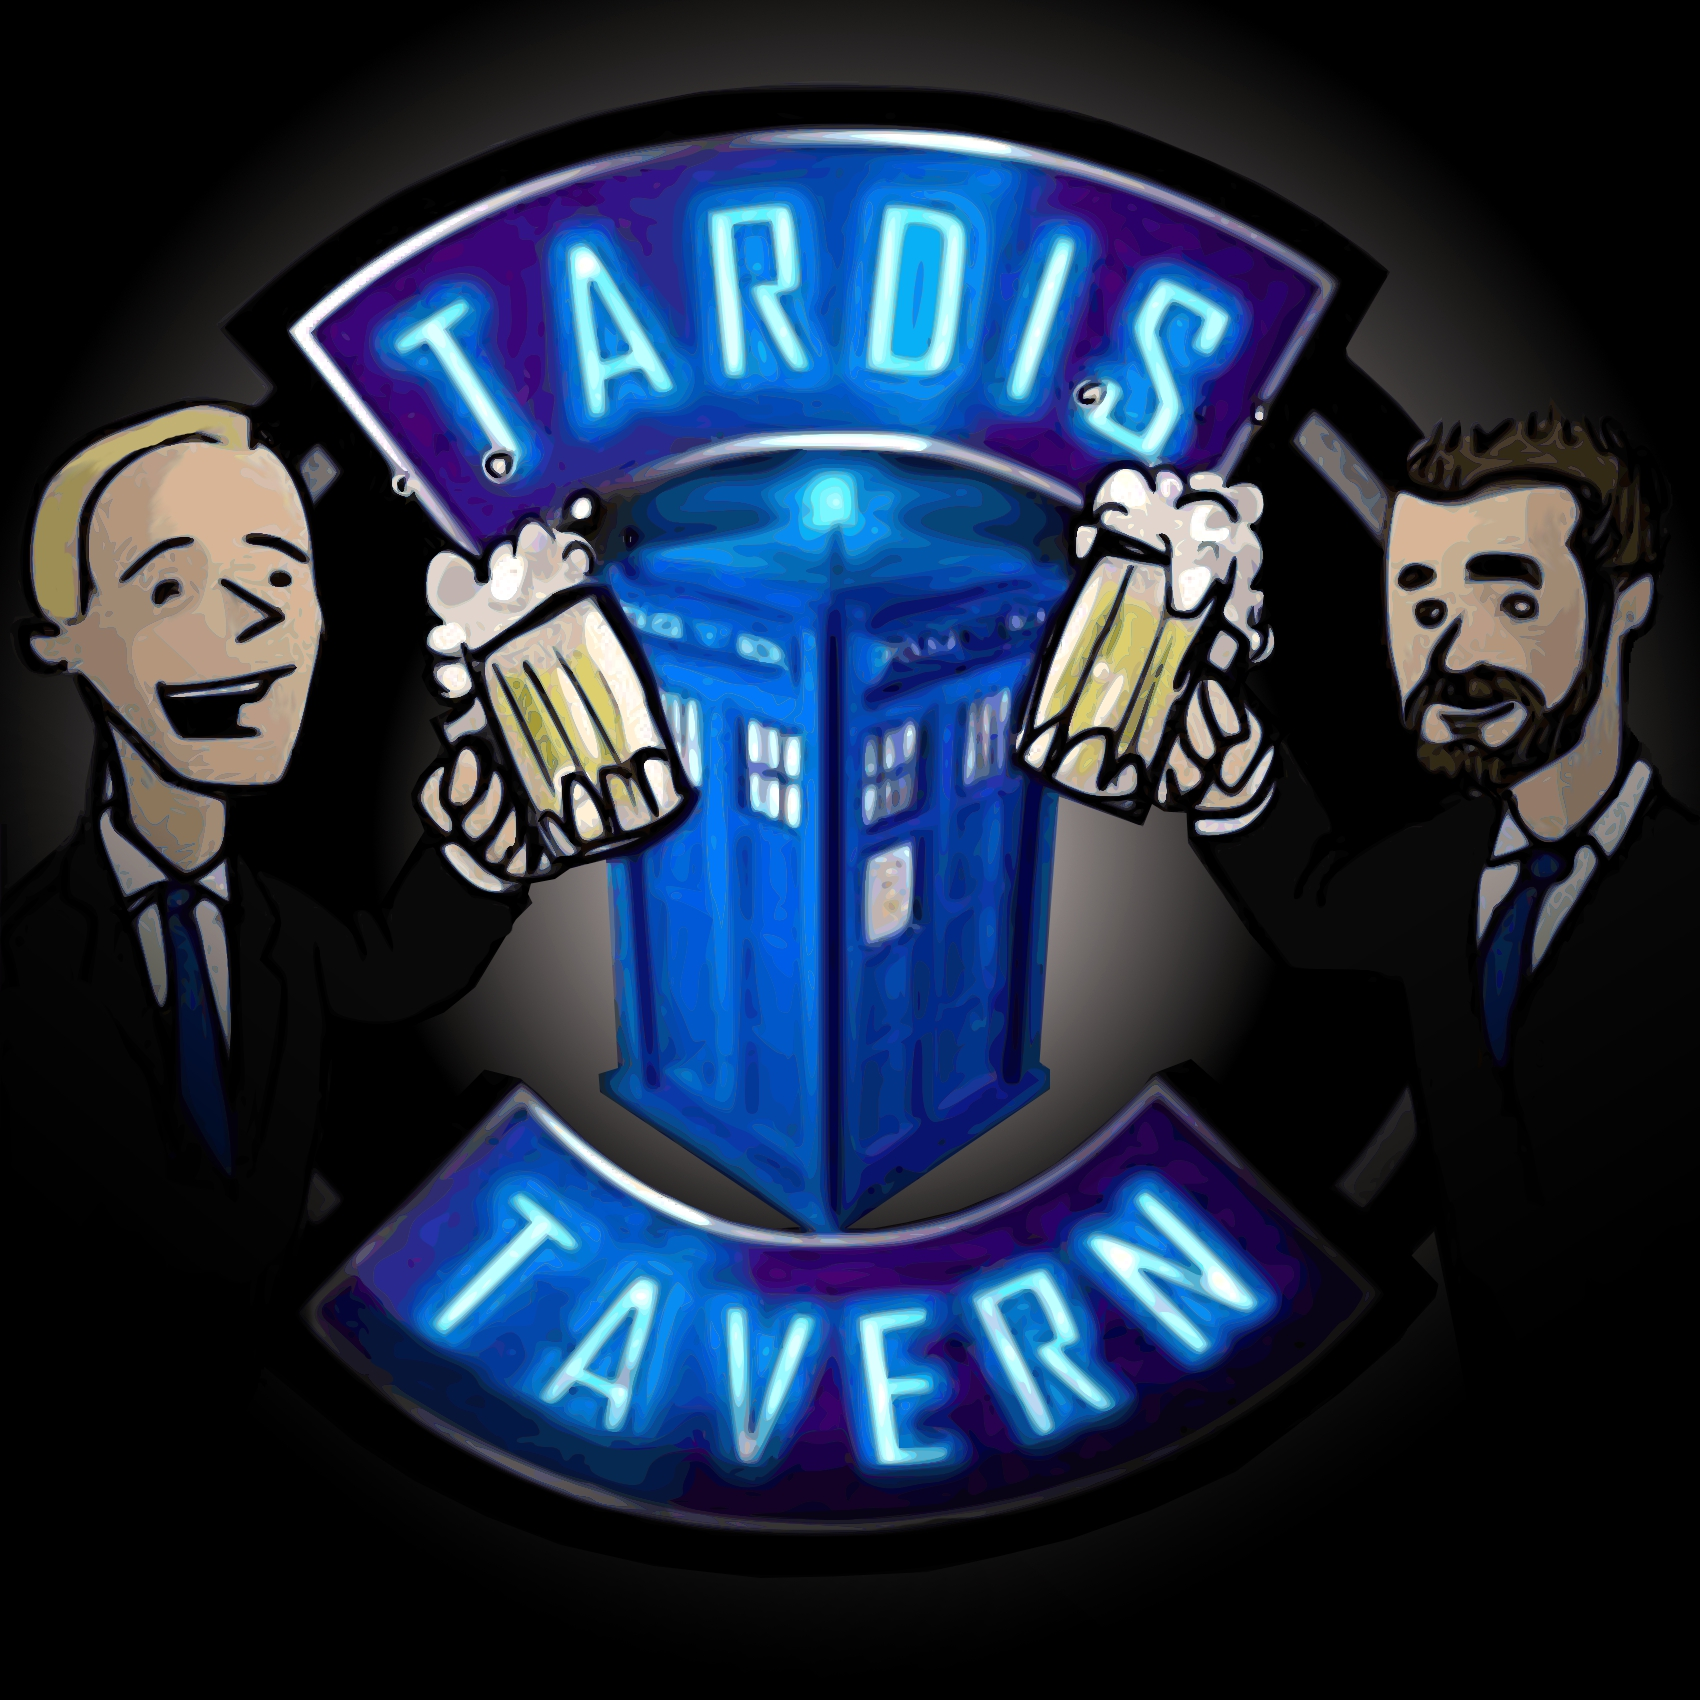 The TARDIS Tavern